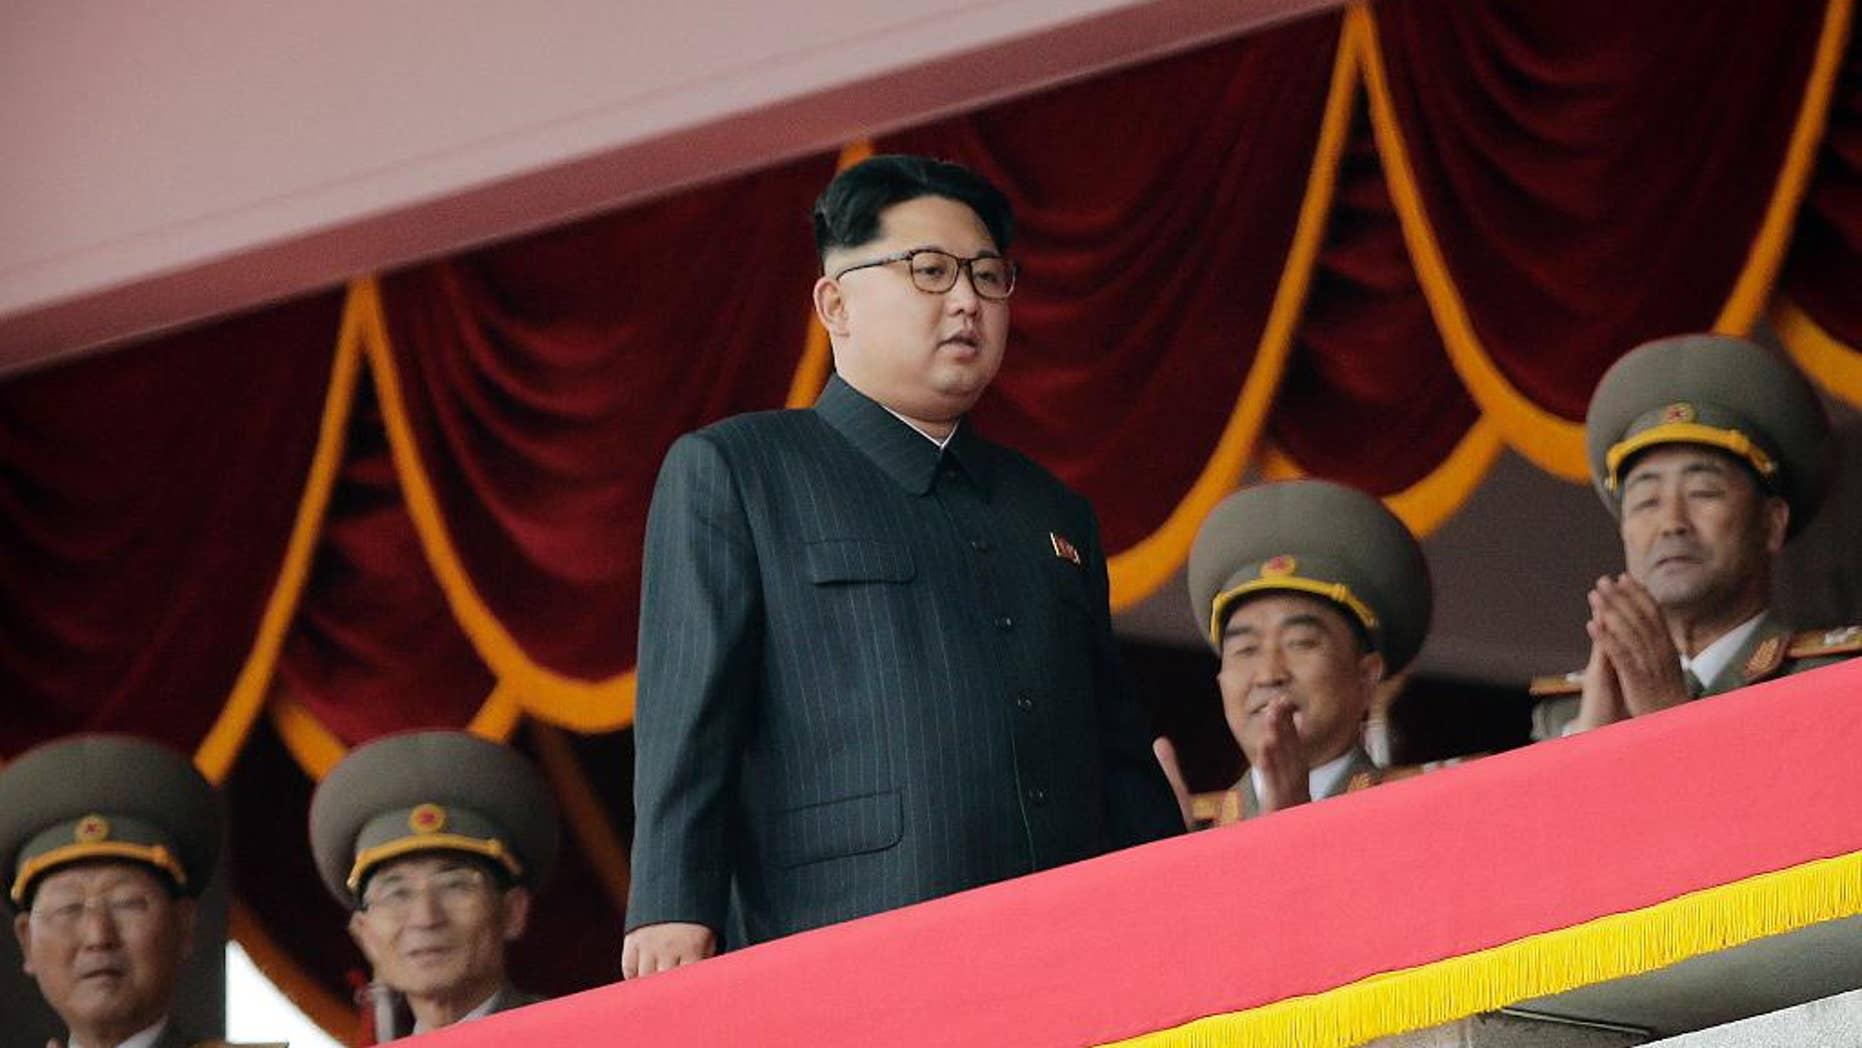 North Korean leader Kim Jong Un, center, watches parade participants from a balcony at the Kim Il Sung Square on Tuesday, May 10, 2016, in Pyongyang, North Korea. Hundreds of thousands of North Koreans celebrated the country's newly completed ruling-party congress with a massive civilian parade featuring floats bearing patriotic slogans and marchers with flags and pompoms. (AP Photo/Wong Maye-E)